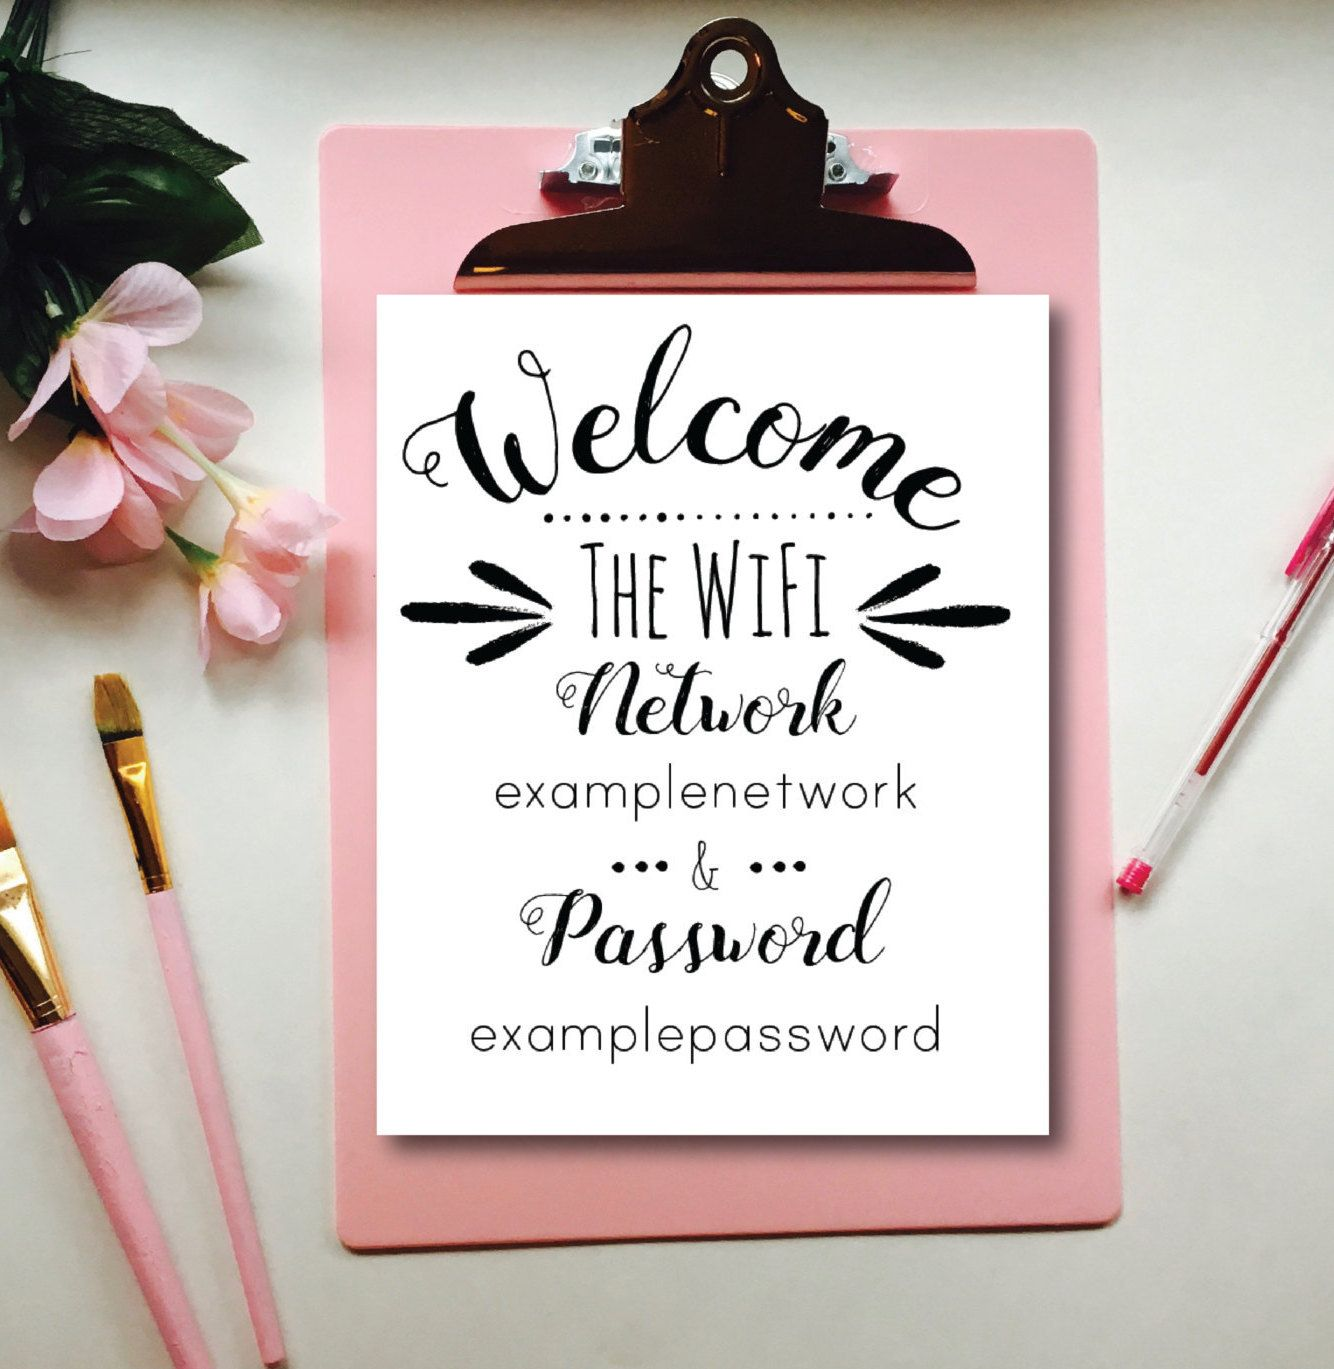 Wifi Network and Password sign, guest bedroom decor, printable decor ...